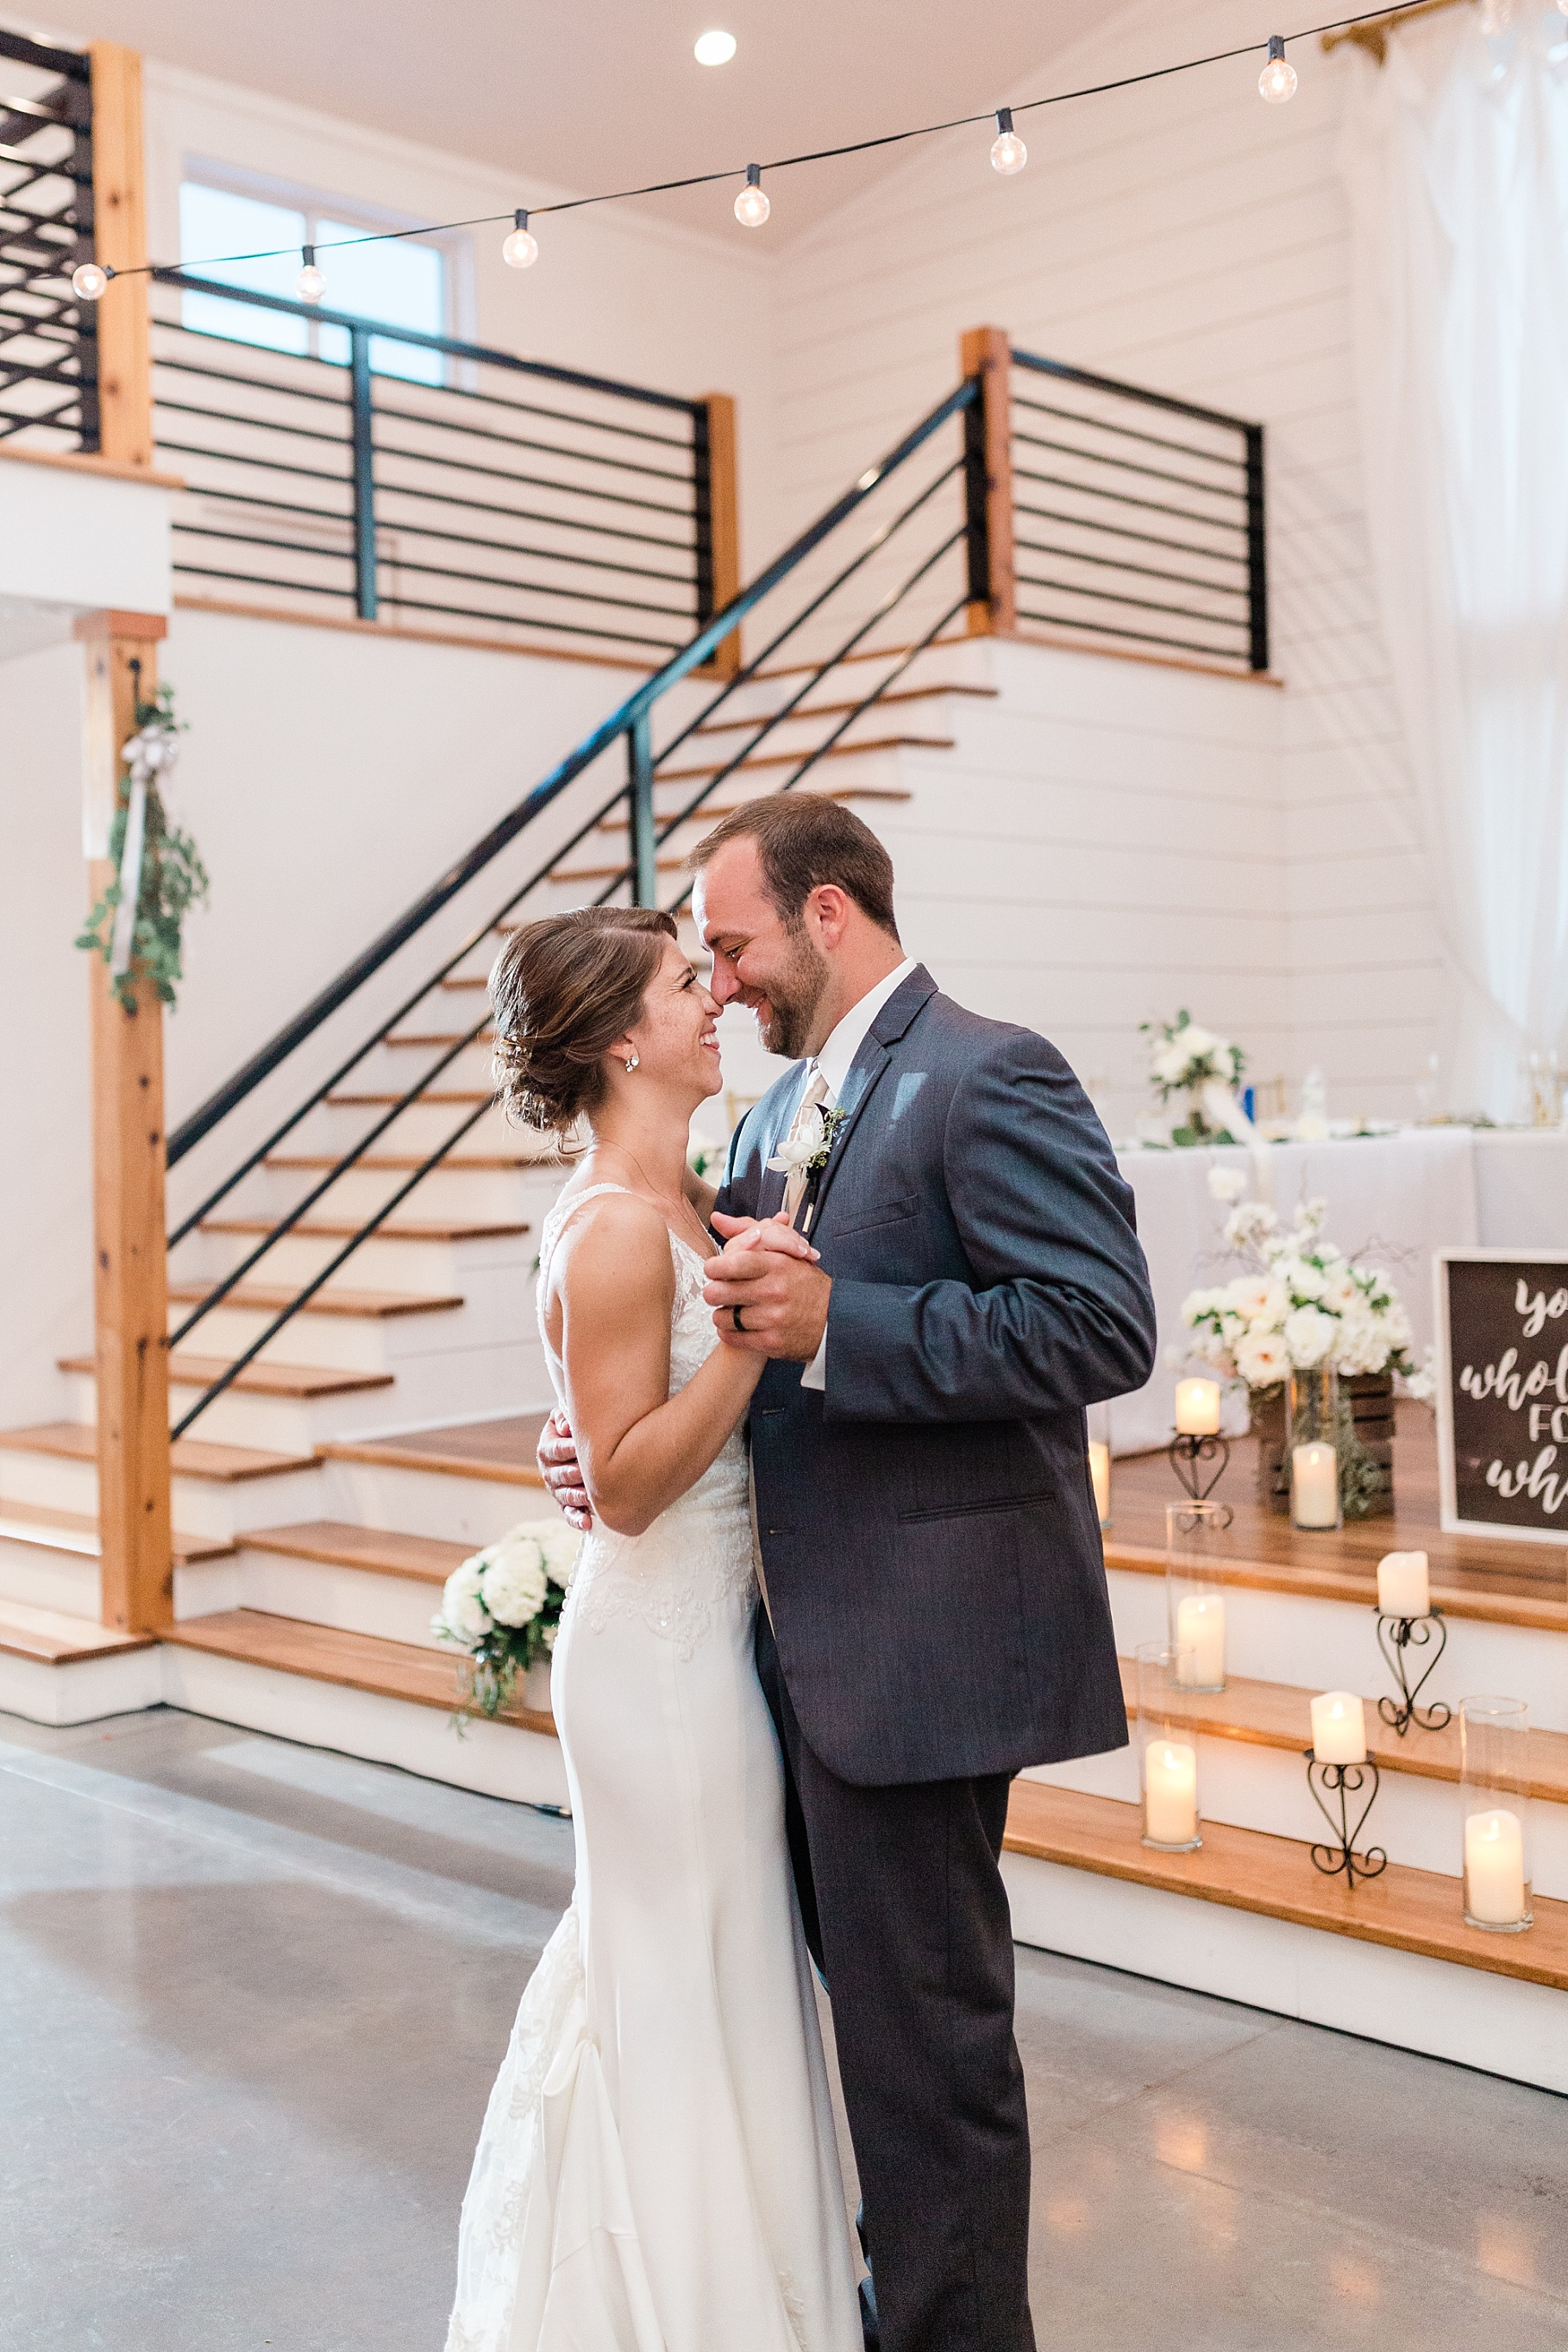 Wedding Ceremony with Confetti Pop at Emerson Fields Venue by Associate Wedding Photographer for Kelsi Kliethermes Photography Best Columbia Missouri and Maui Hawaii Wedding Photographer_0027.jpg